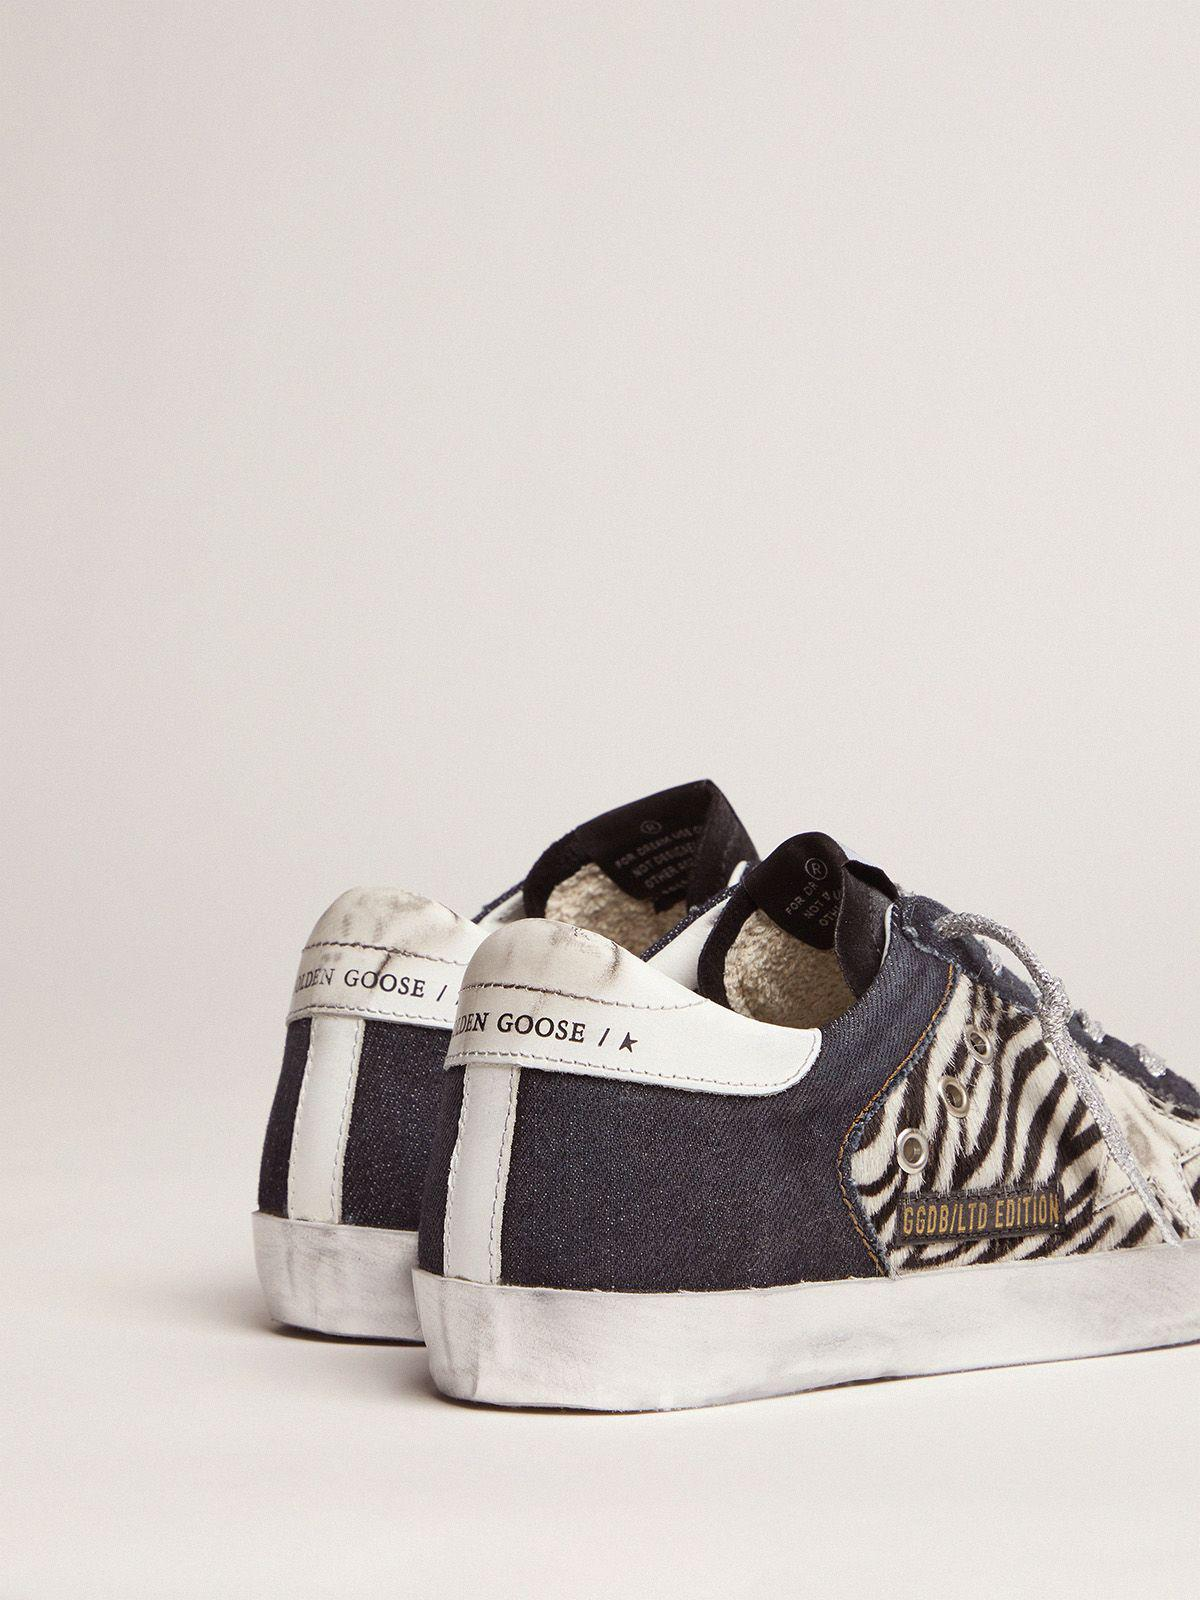 LAB Limited Edition Super-Star sneakers in denim, zebra-print pony skin and suede 3